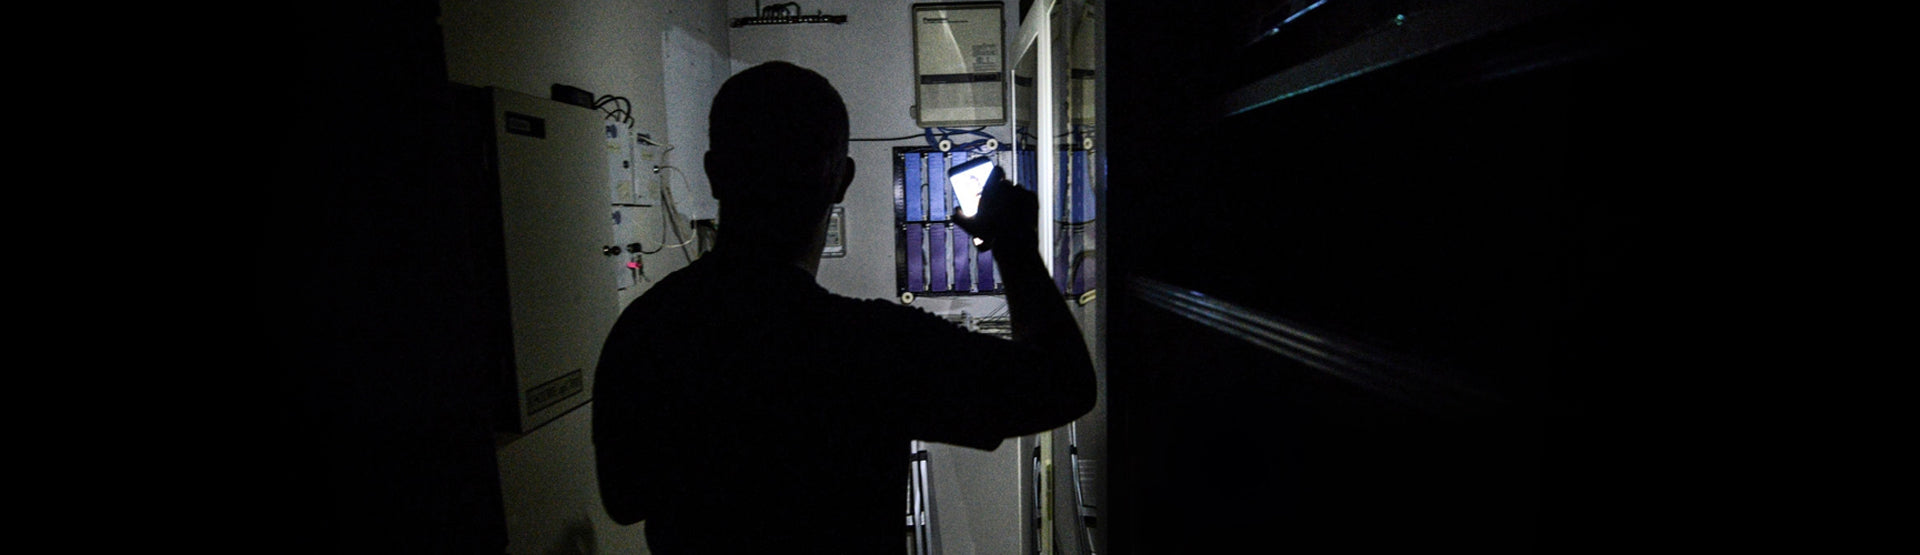 A man navigating a dark hallway with phone flashlight, looking for the fuse box.